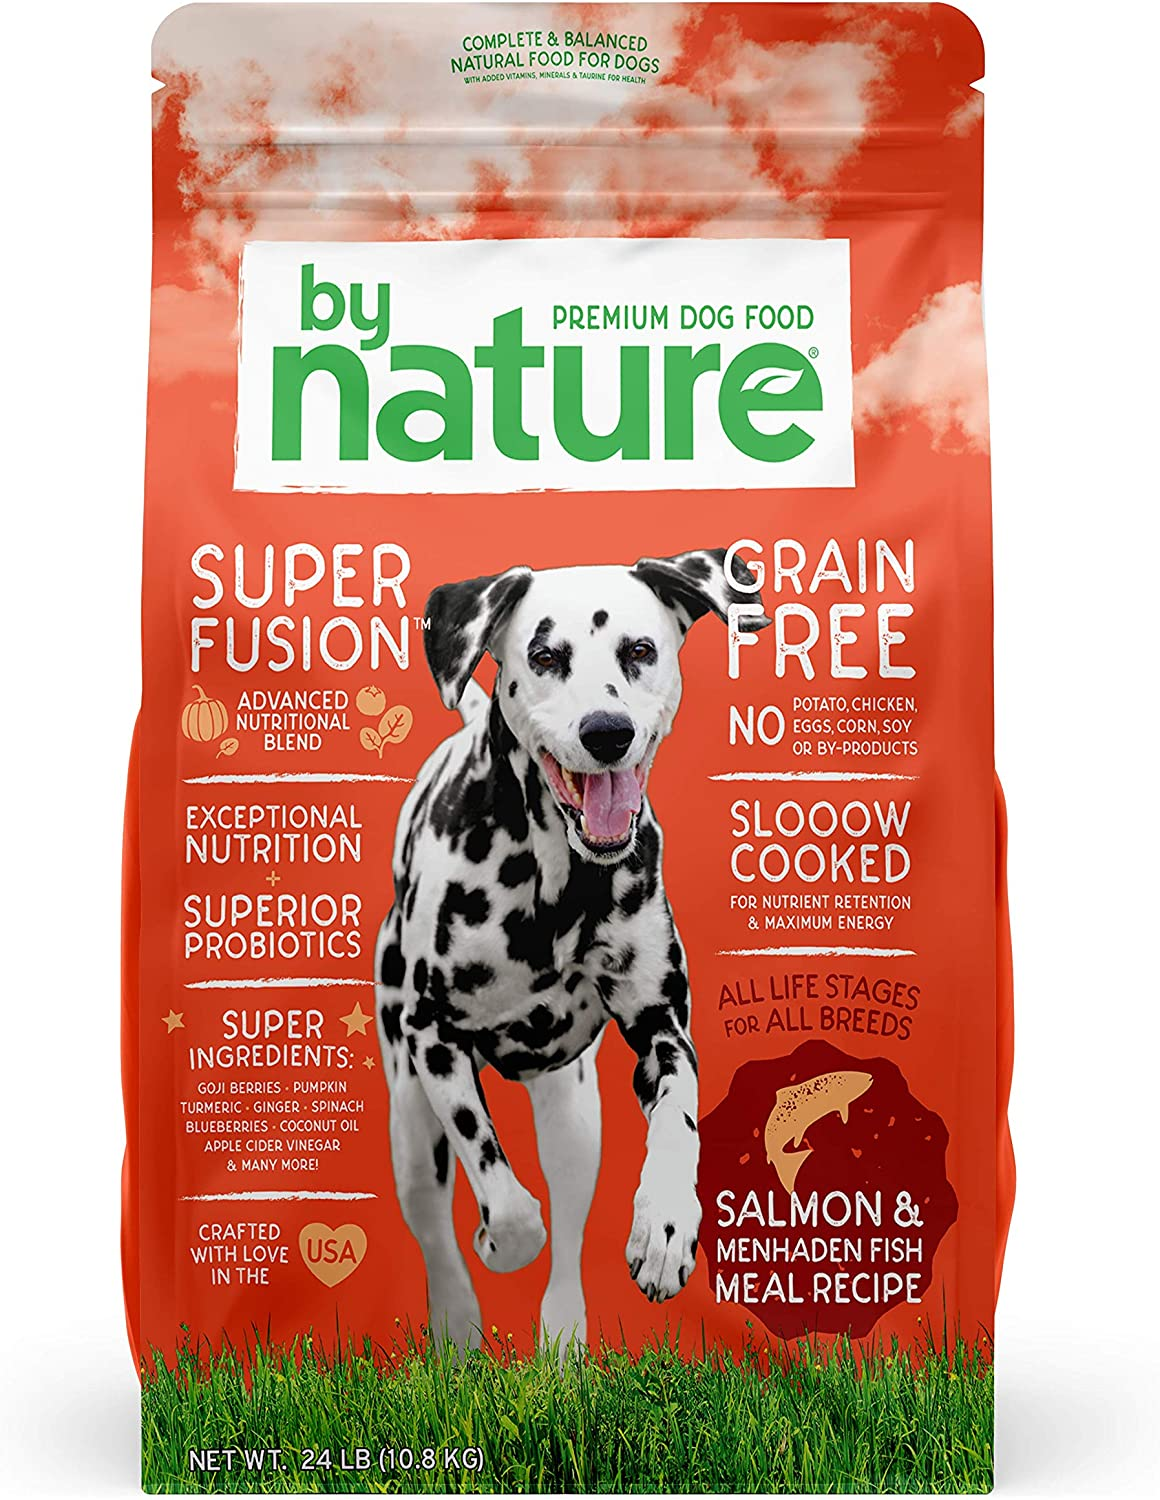 By Nature Pet Foods Grain Free Dog Food Made in USA Grain Free Dry Dog Food with Superfood Ingredients for Food Sensitivities and Immune Health